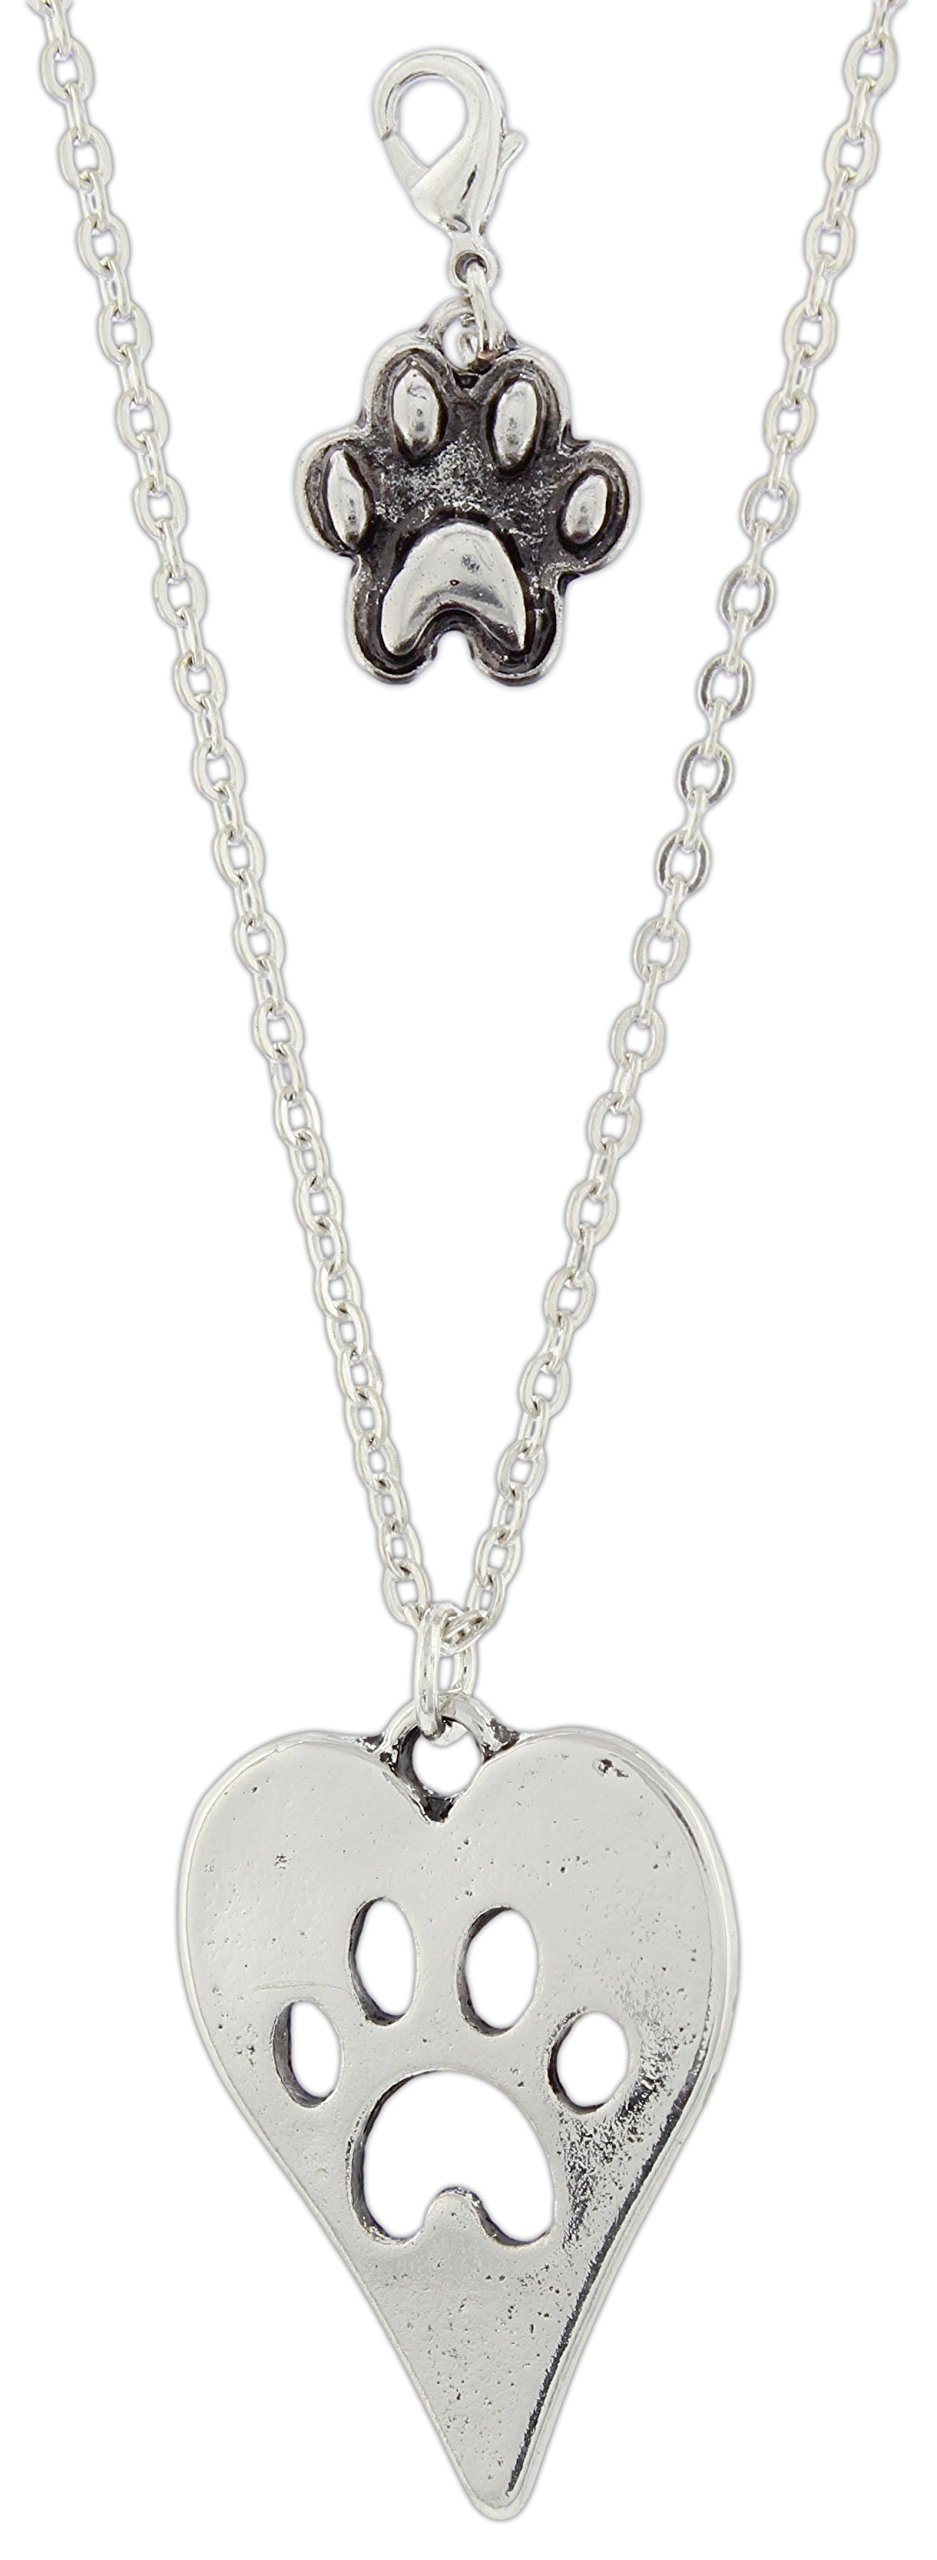 Midwest CBK Paw Print Heart Pendant Necklace with Matching Pet Collar Charm